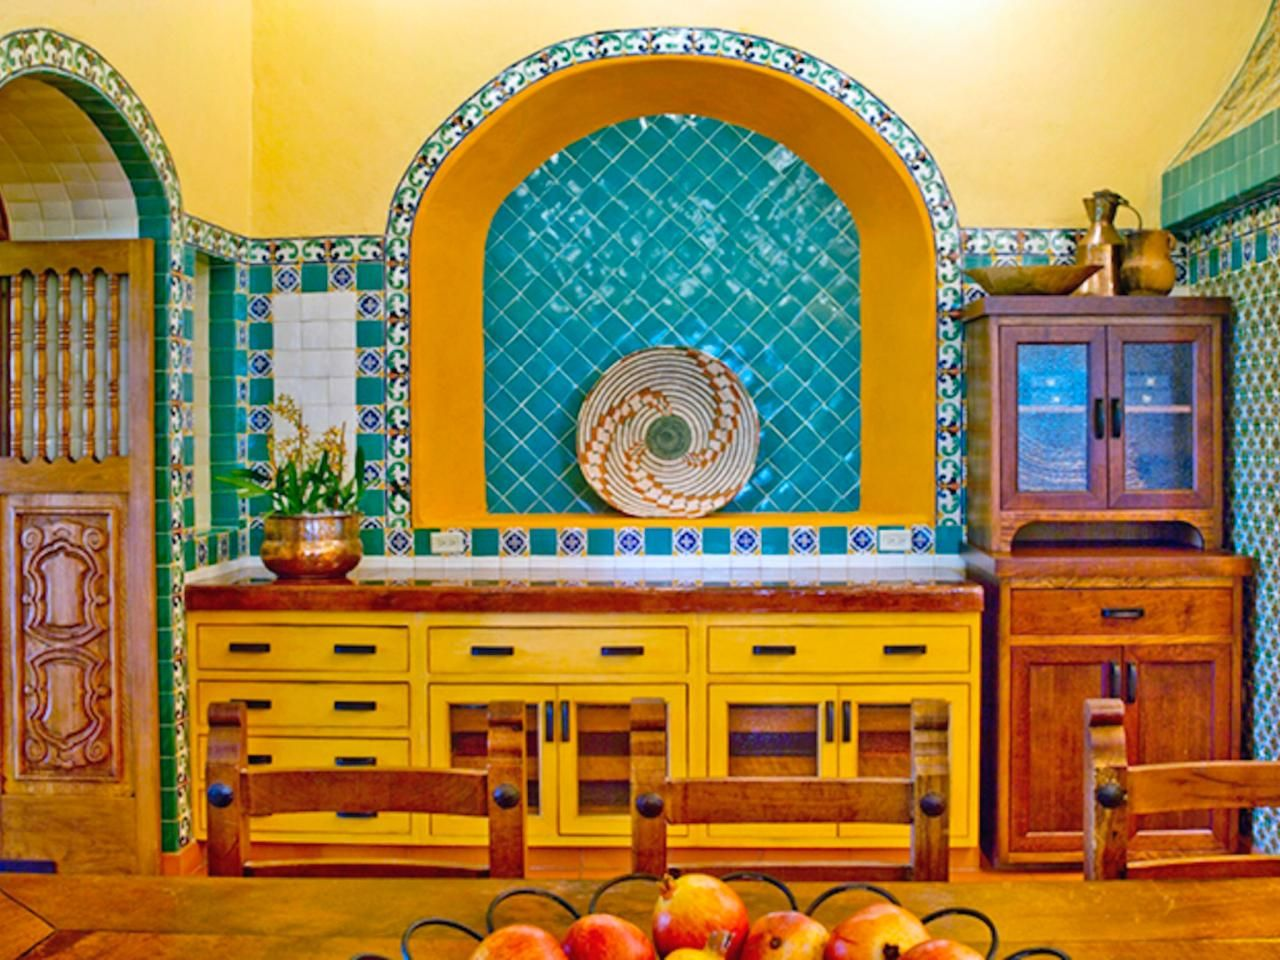 Fascinatingly colorful cuisine